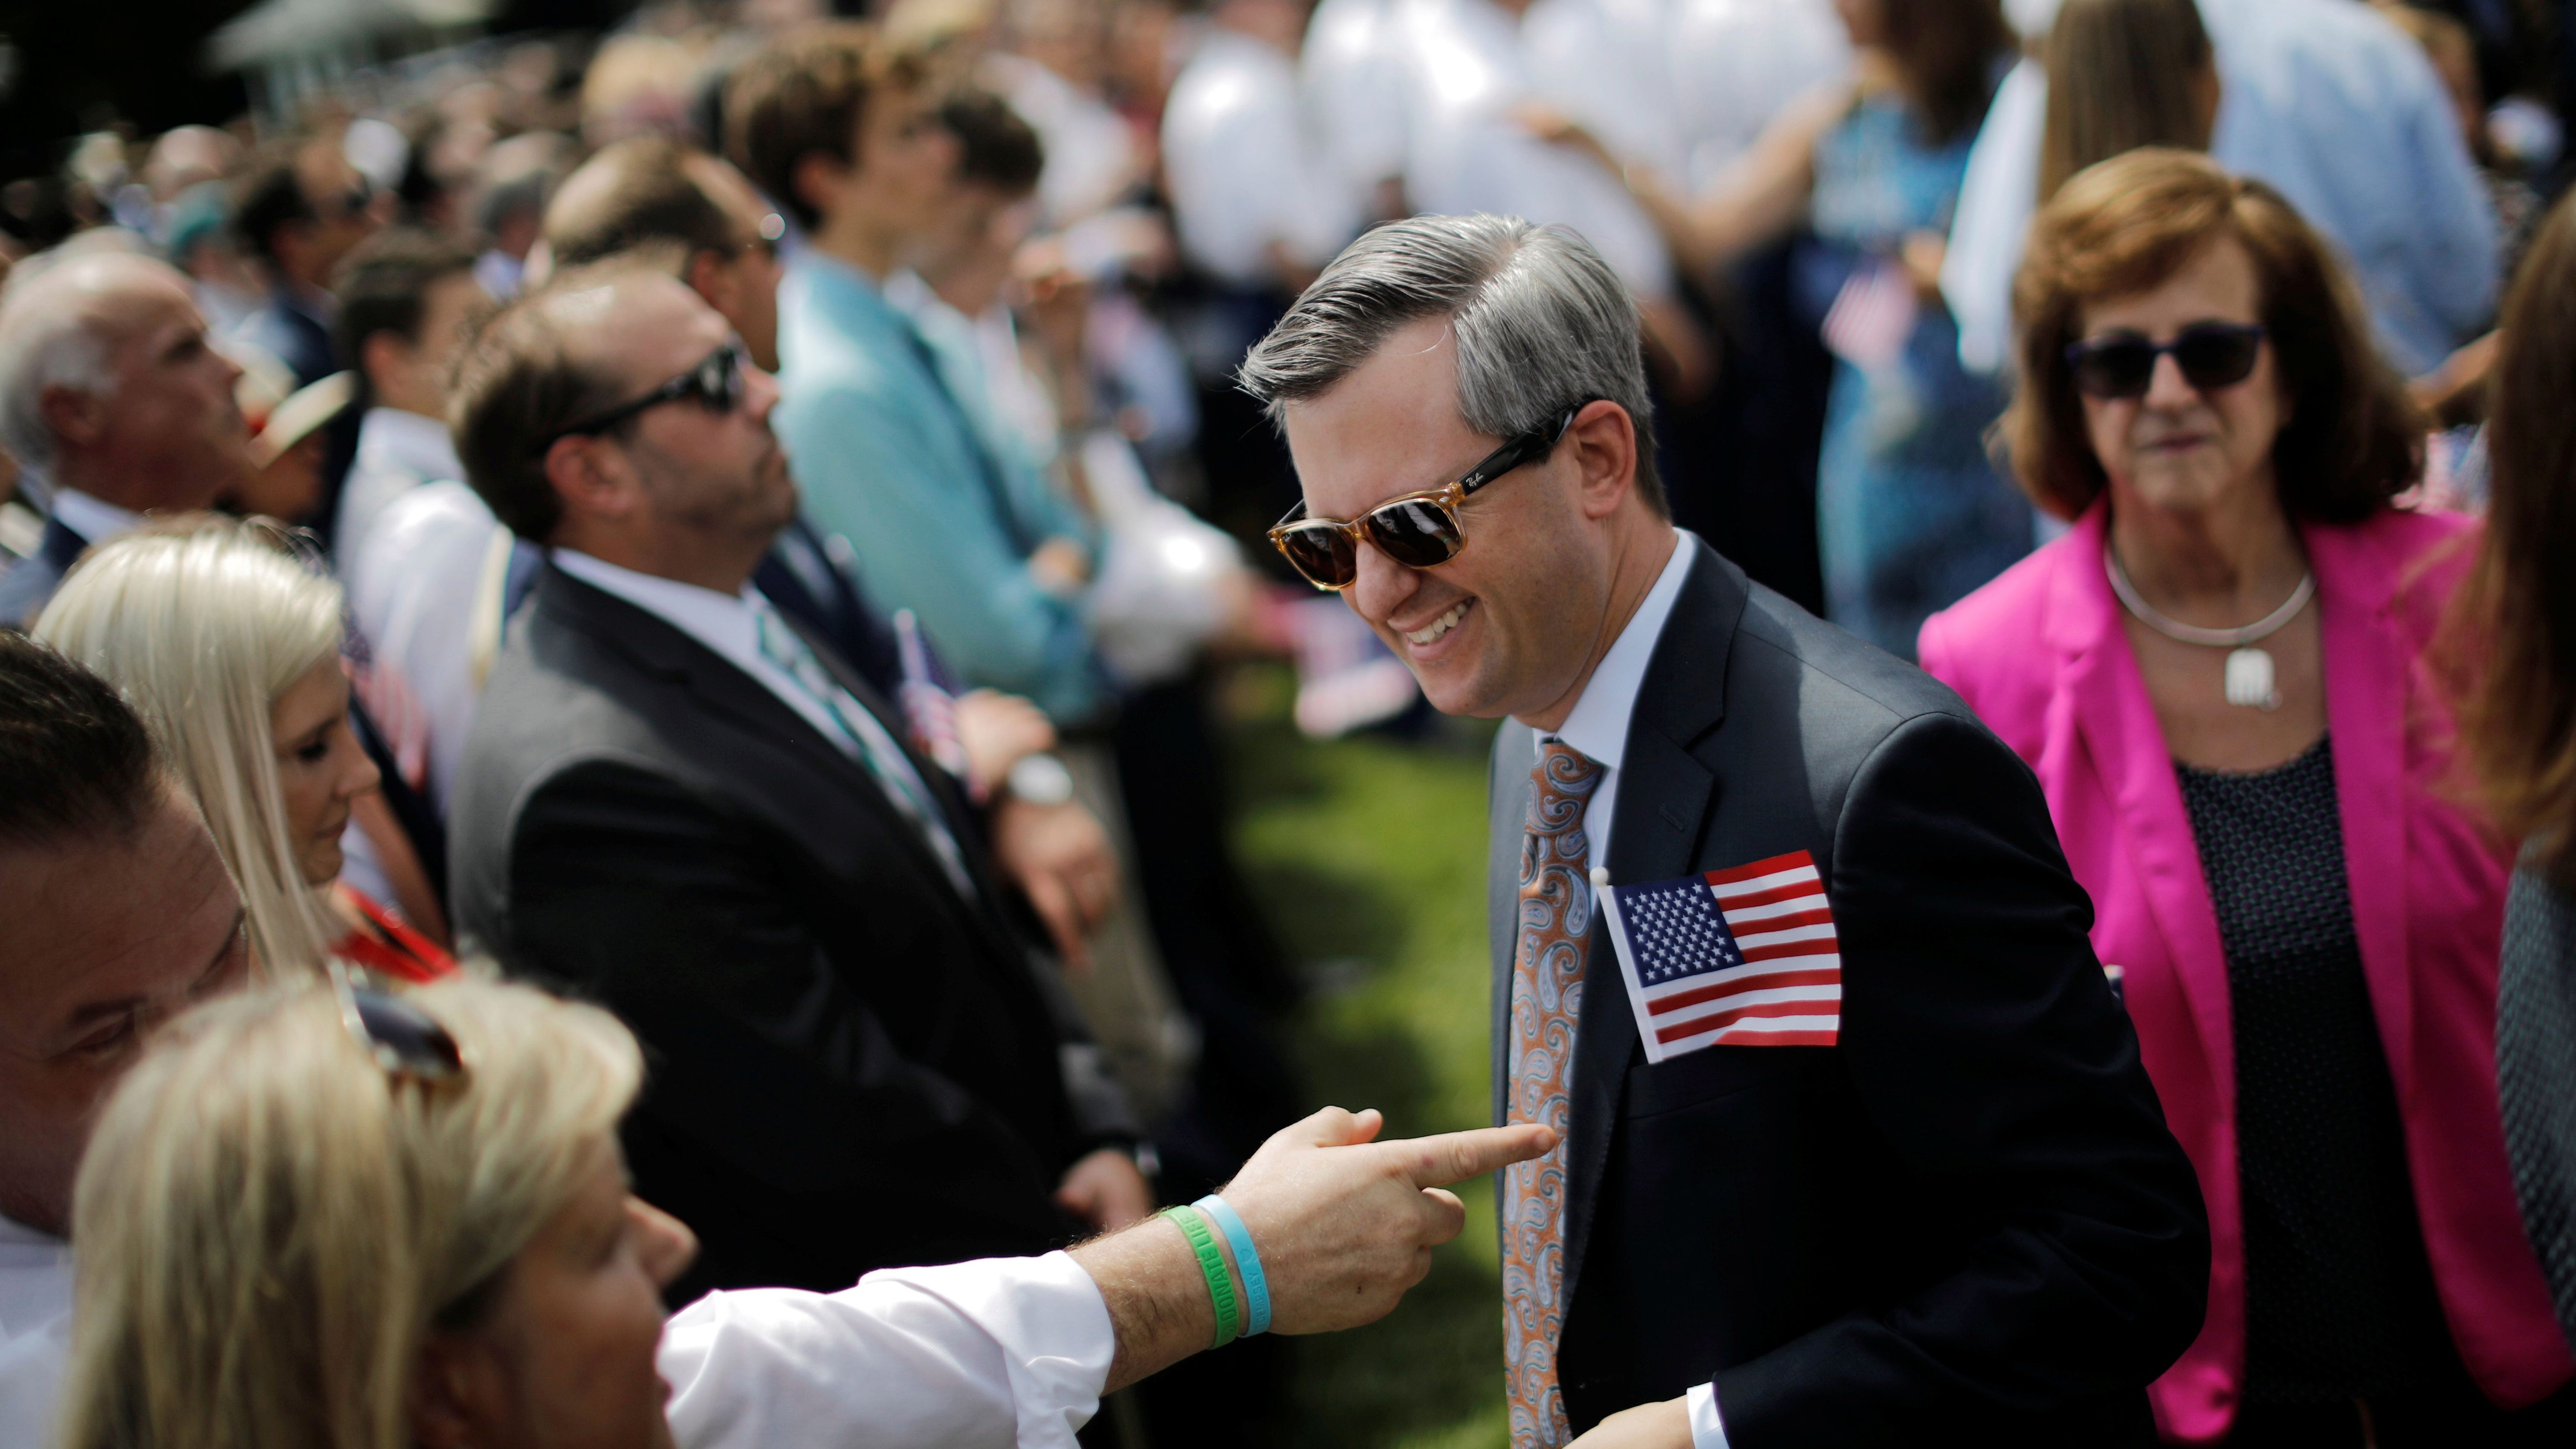 """Guest arrive for a """"celebration of America"""" event on the South Lawn of the White House in Washington, U.S., June 5, 2018. The event was arranged after Trump canceled the planned visit of the Super Bowl champion Philadelphia Eagles to the White House. REUTERS/Carlos Barria - RC12BA905F80"""